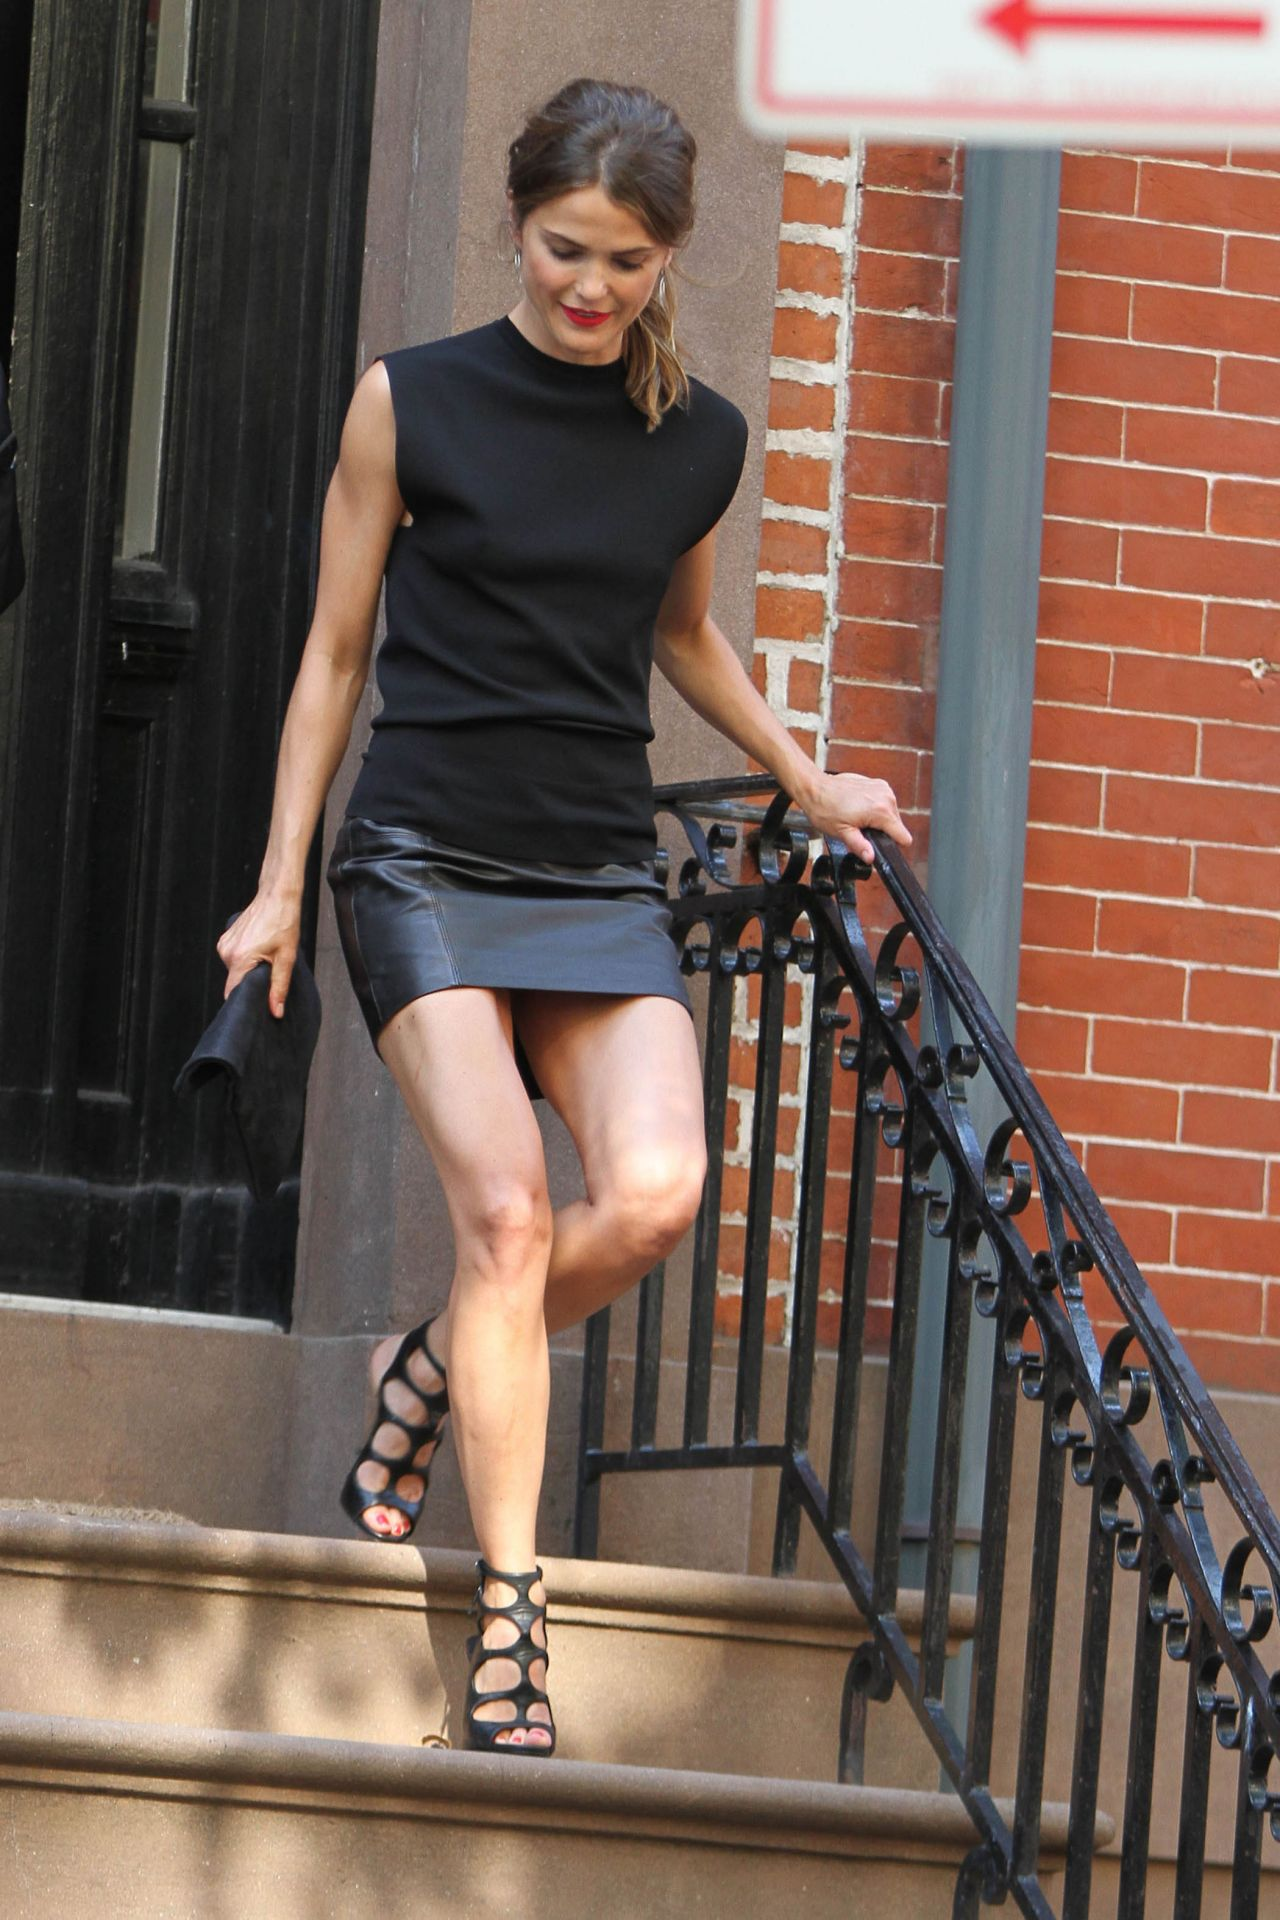 Keri Russell Hot Legs in a Leather Skirt - Leaving Her Home in Brooklyn - July 2014